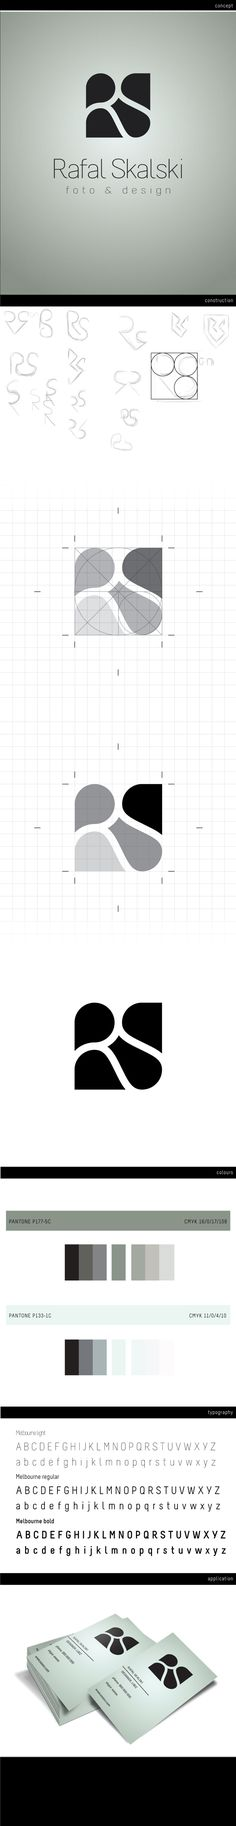 Rafal Skalski / logo / design / initials / white space / negative space / identity / sketches / process / steps to creating a logo